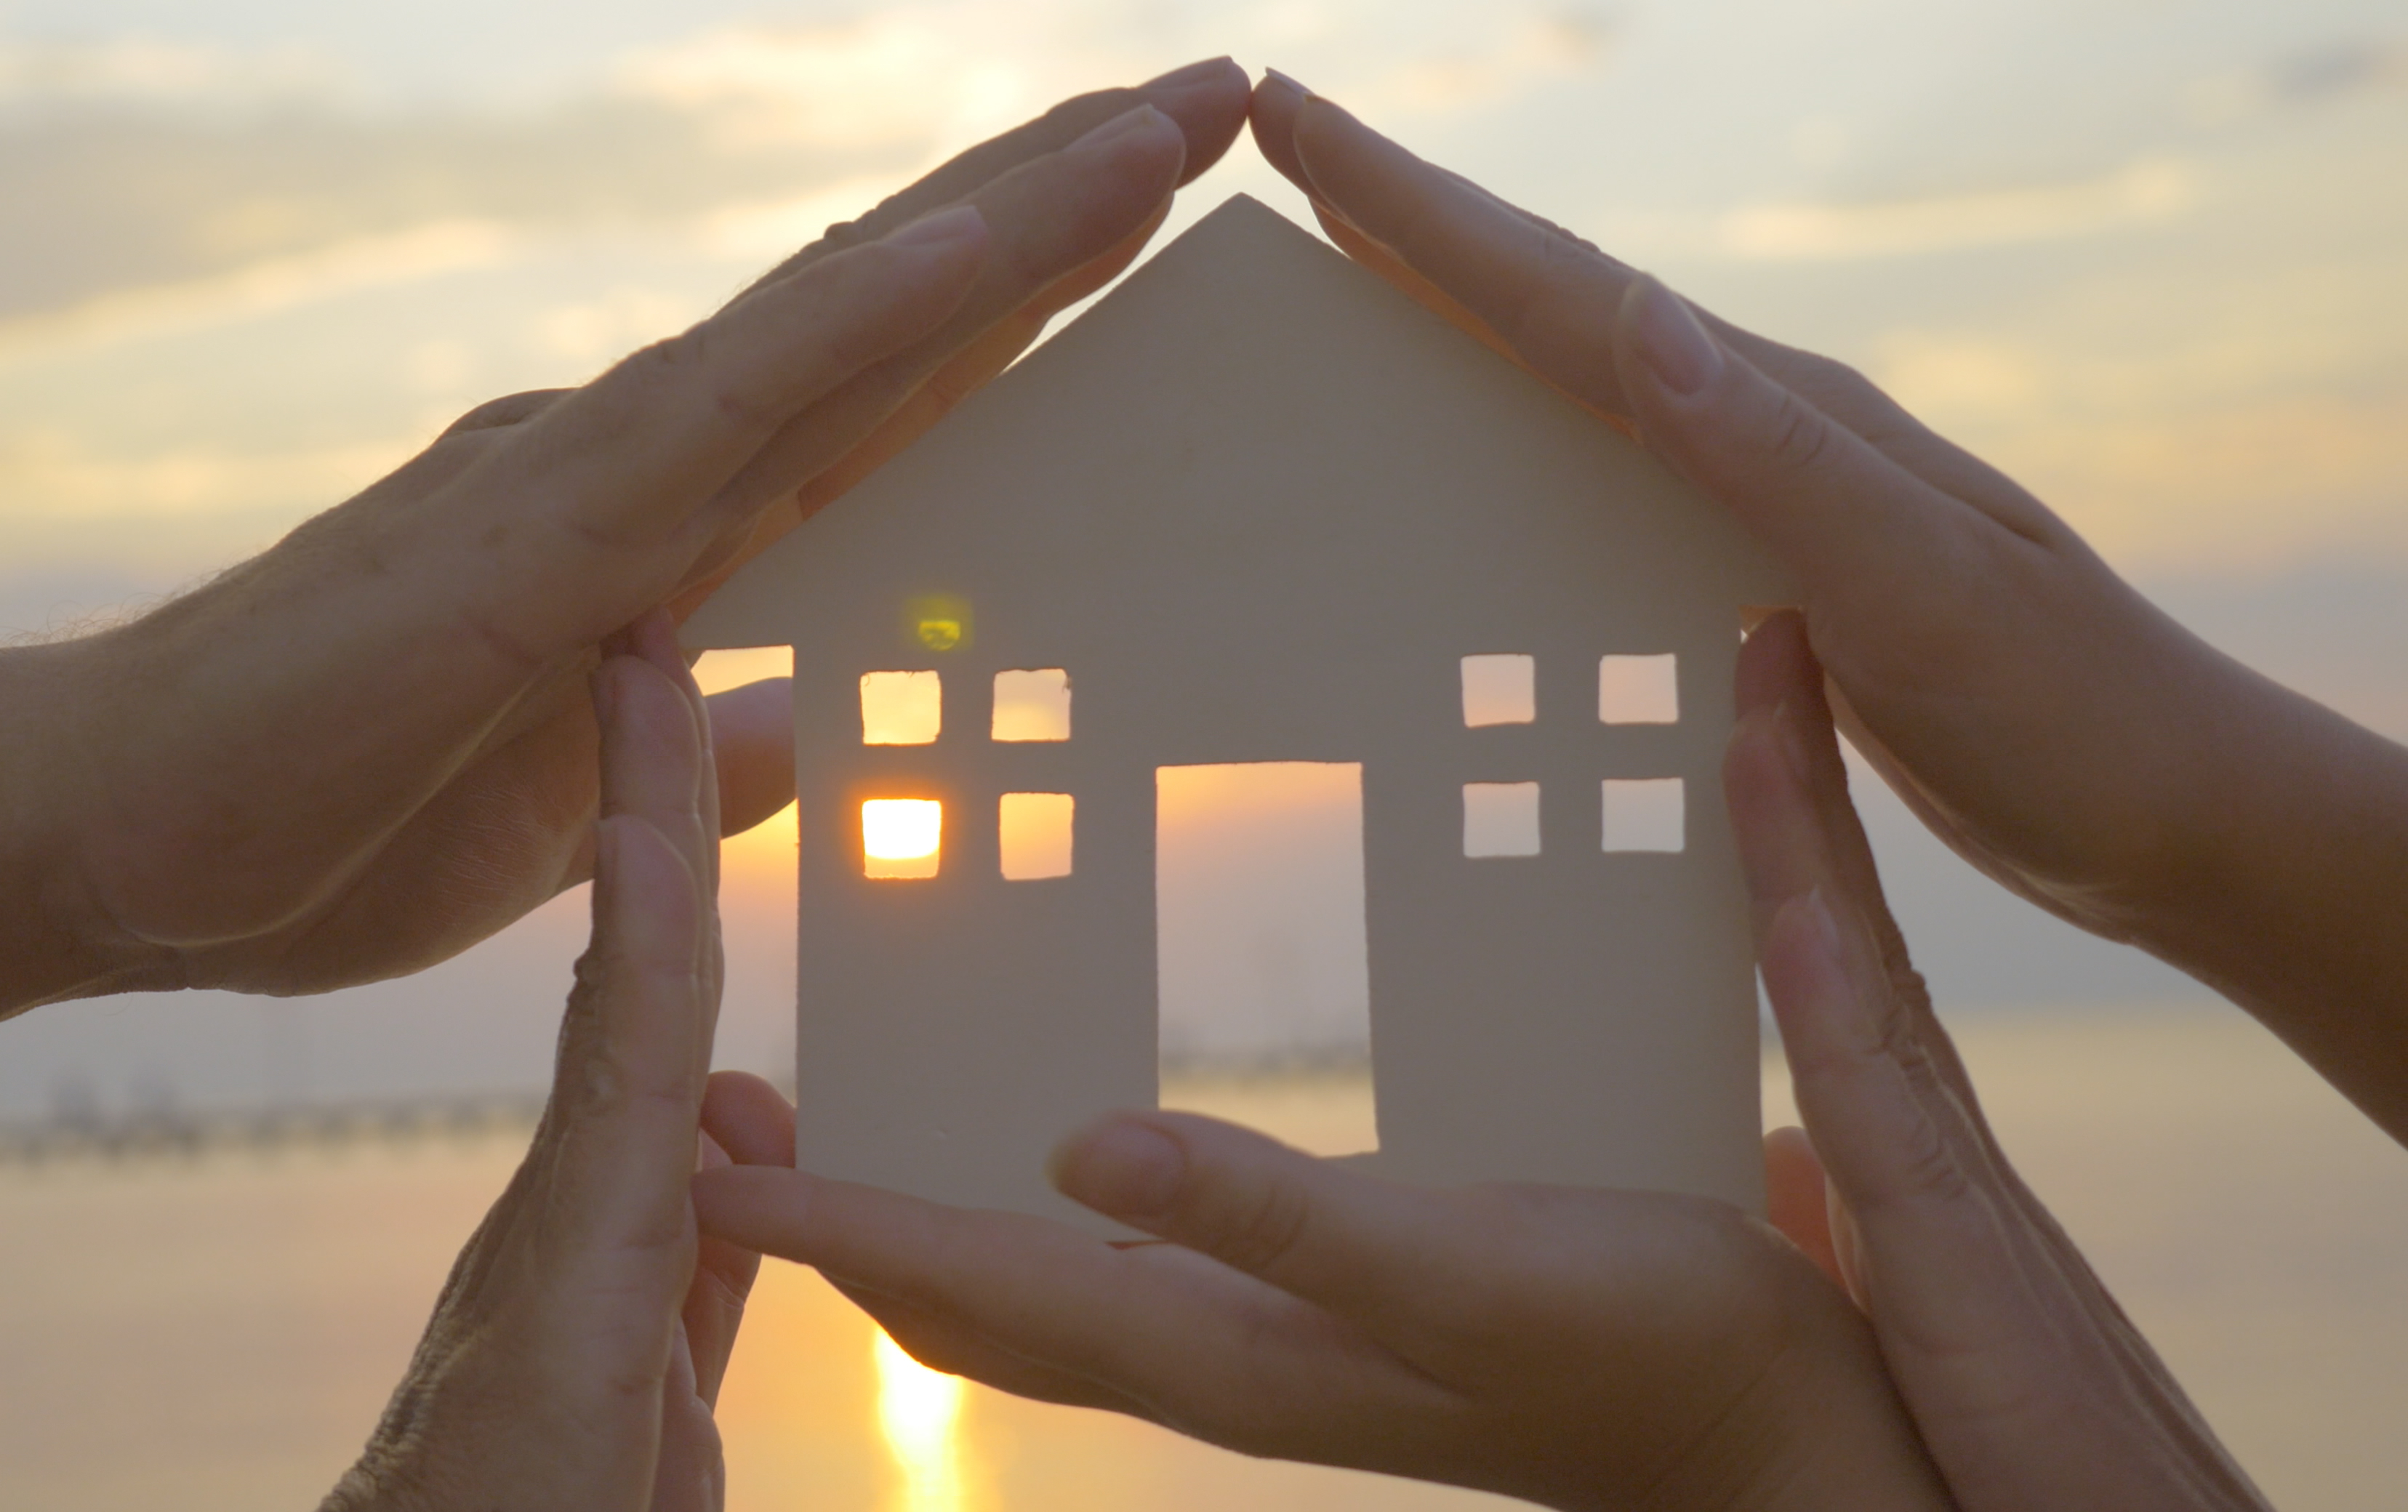 Hands holding small house cutout